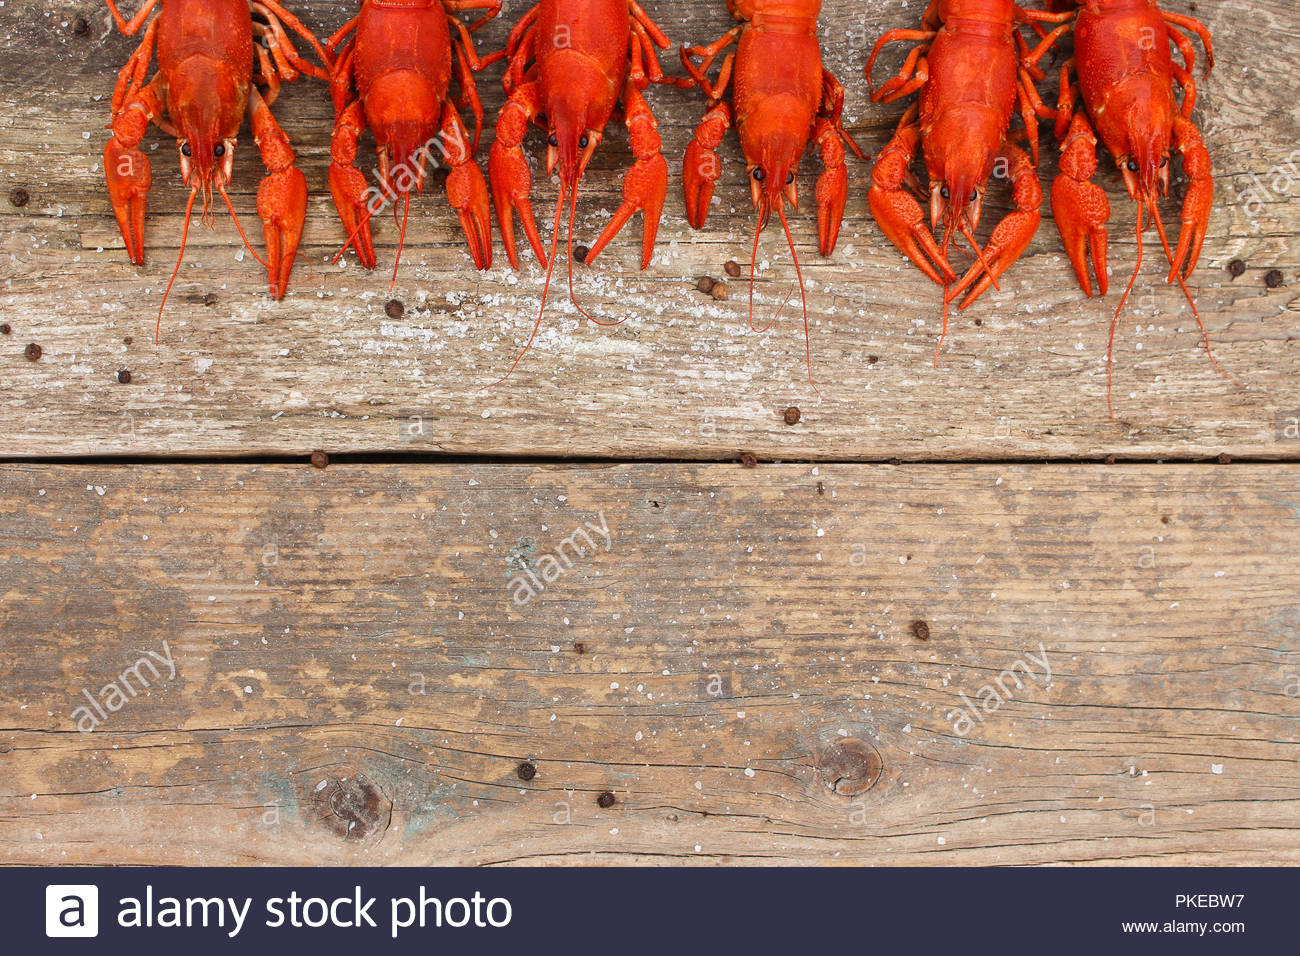 Crawfish on the old wooden background Top view Stock Photo 1300x956